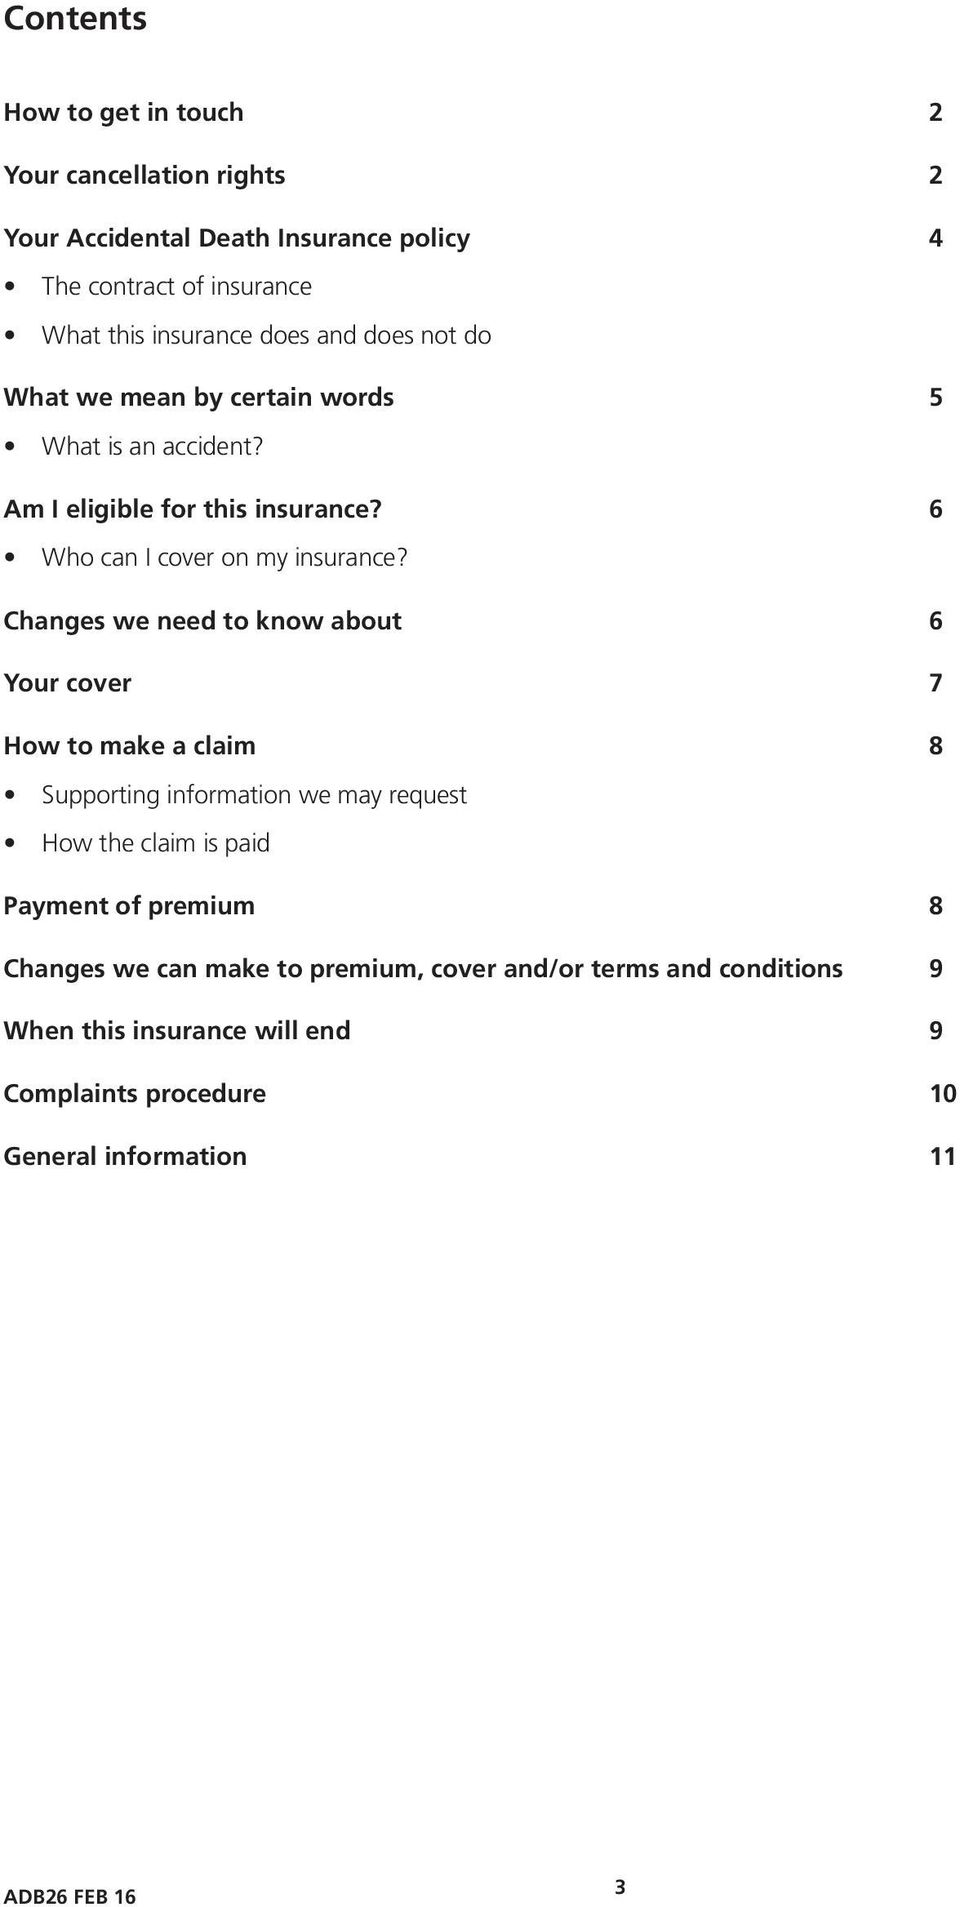 Changes we need to know about 6 Your cover 7 How to make a claim 8 Supporting information we may request How the claim is paid Payment of premium